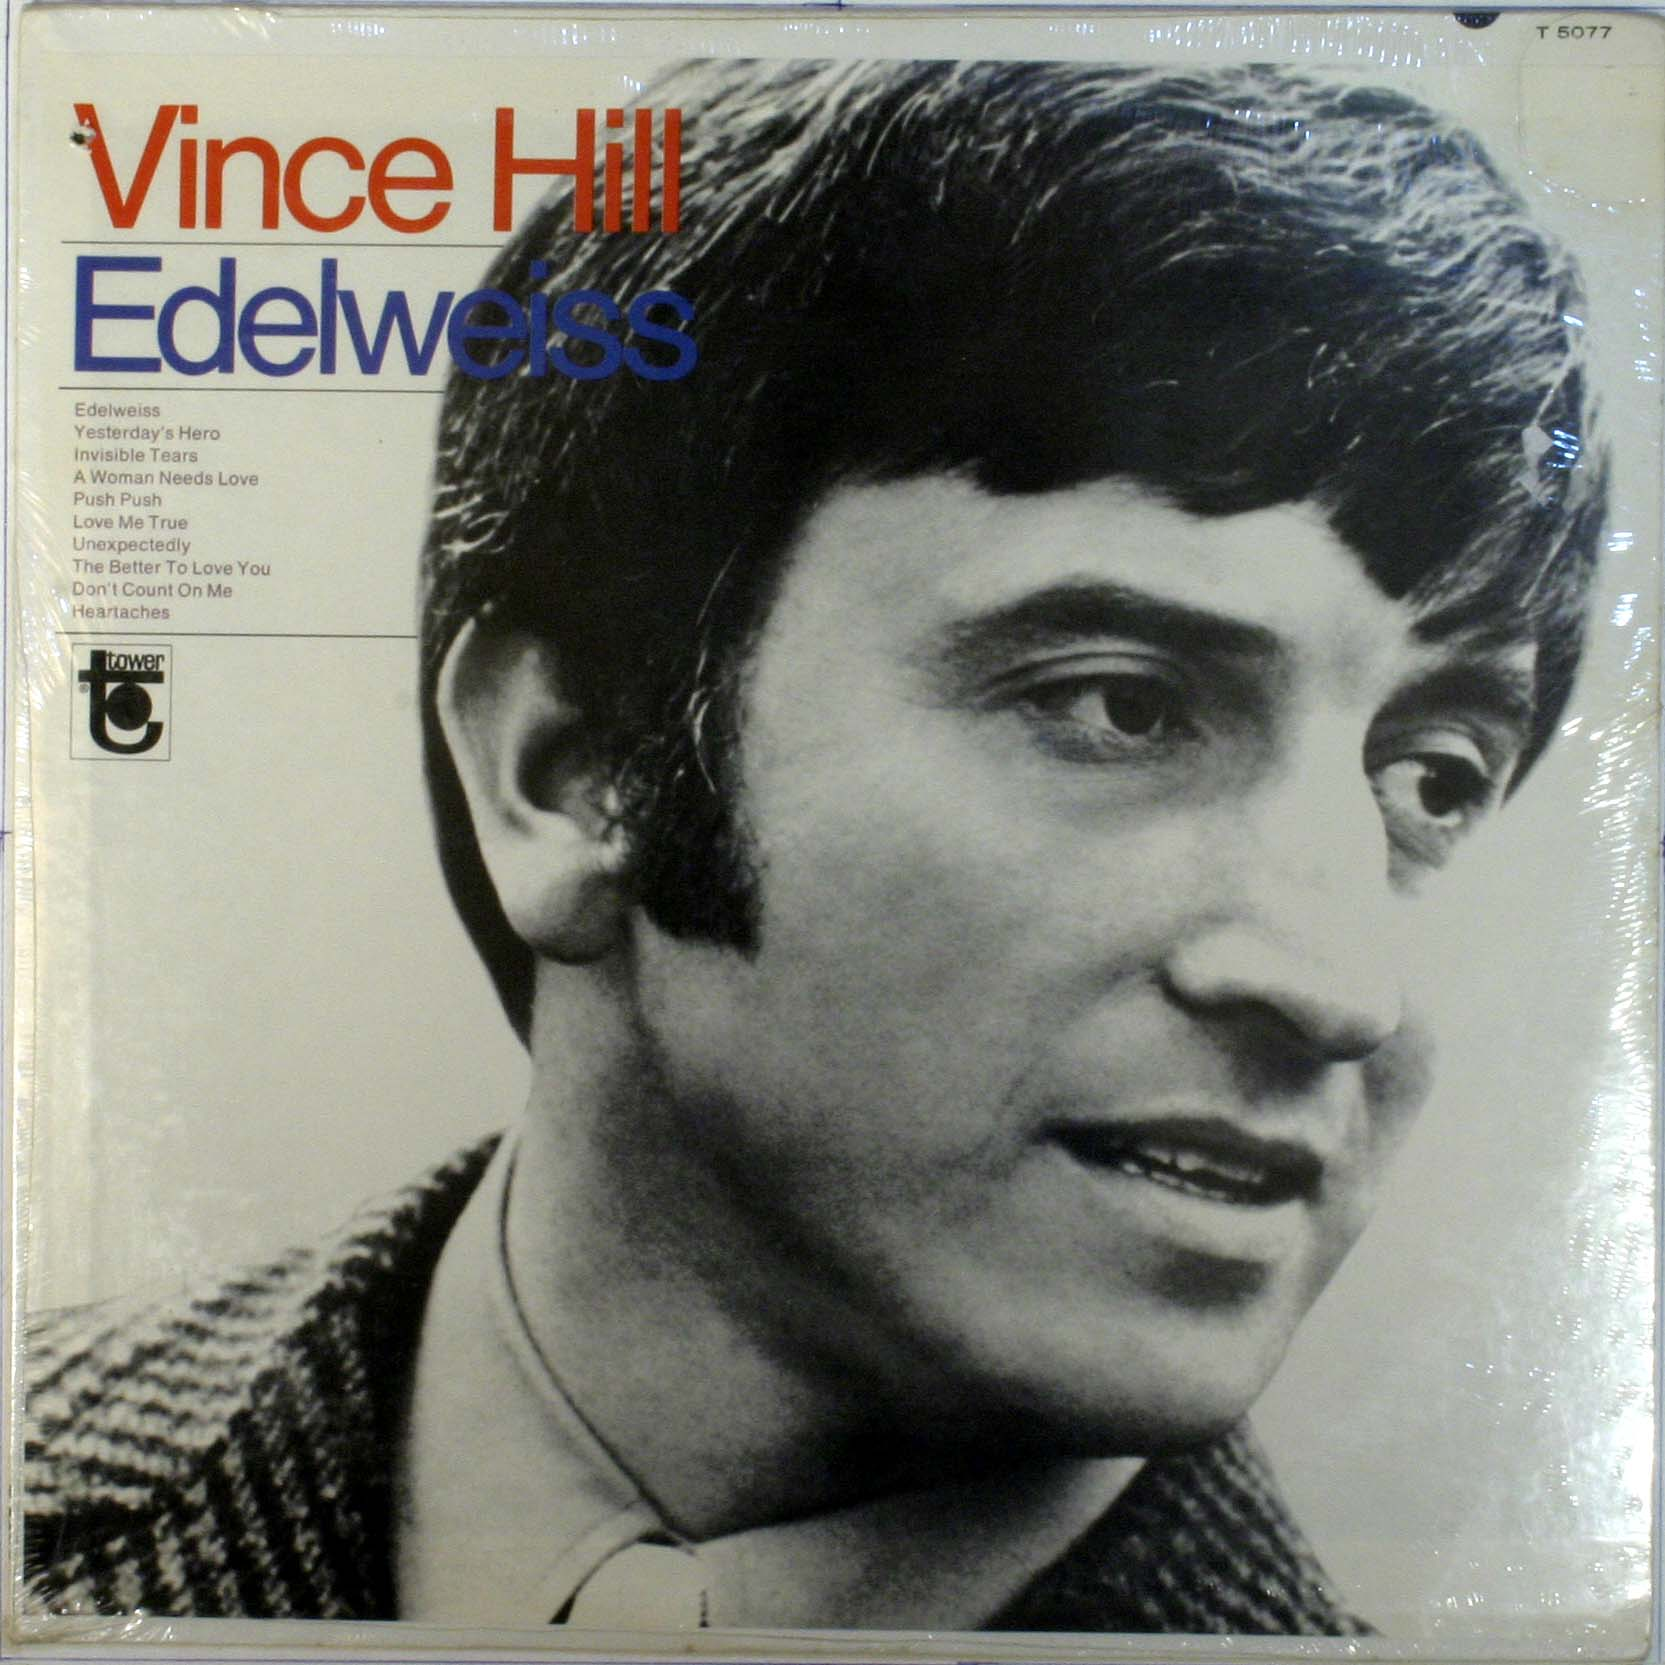 Vince Hill - Edelweiss Record